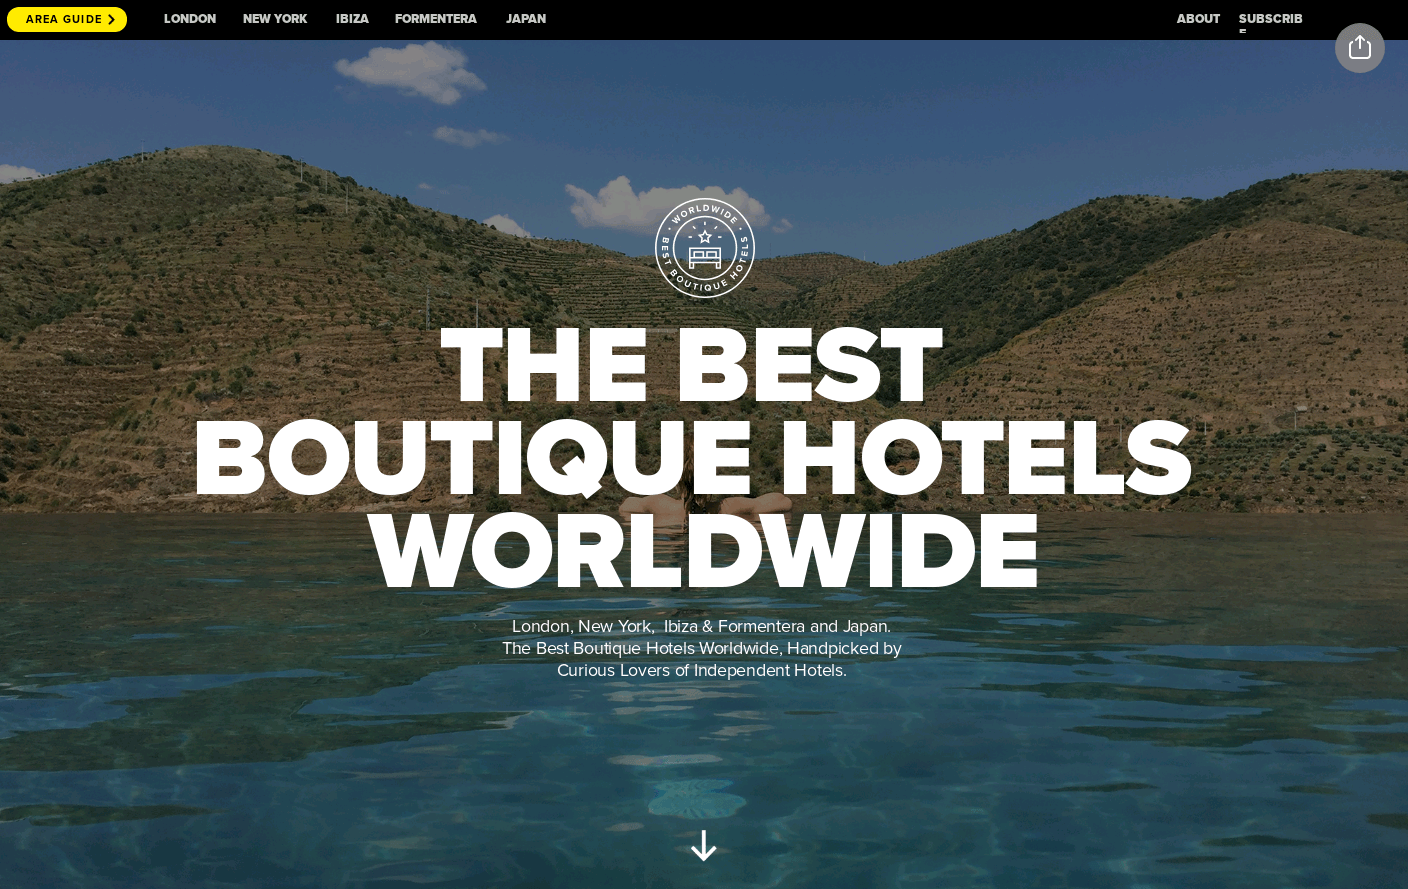 Best Boutique Hotels Worldwide